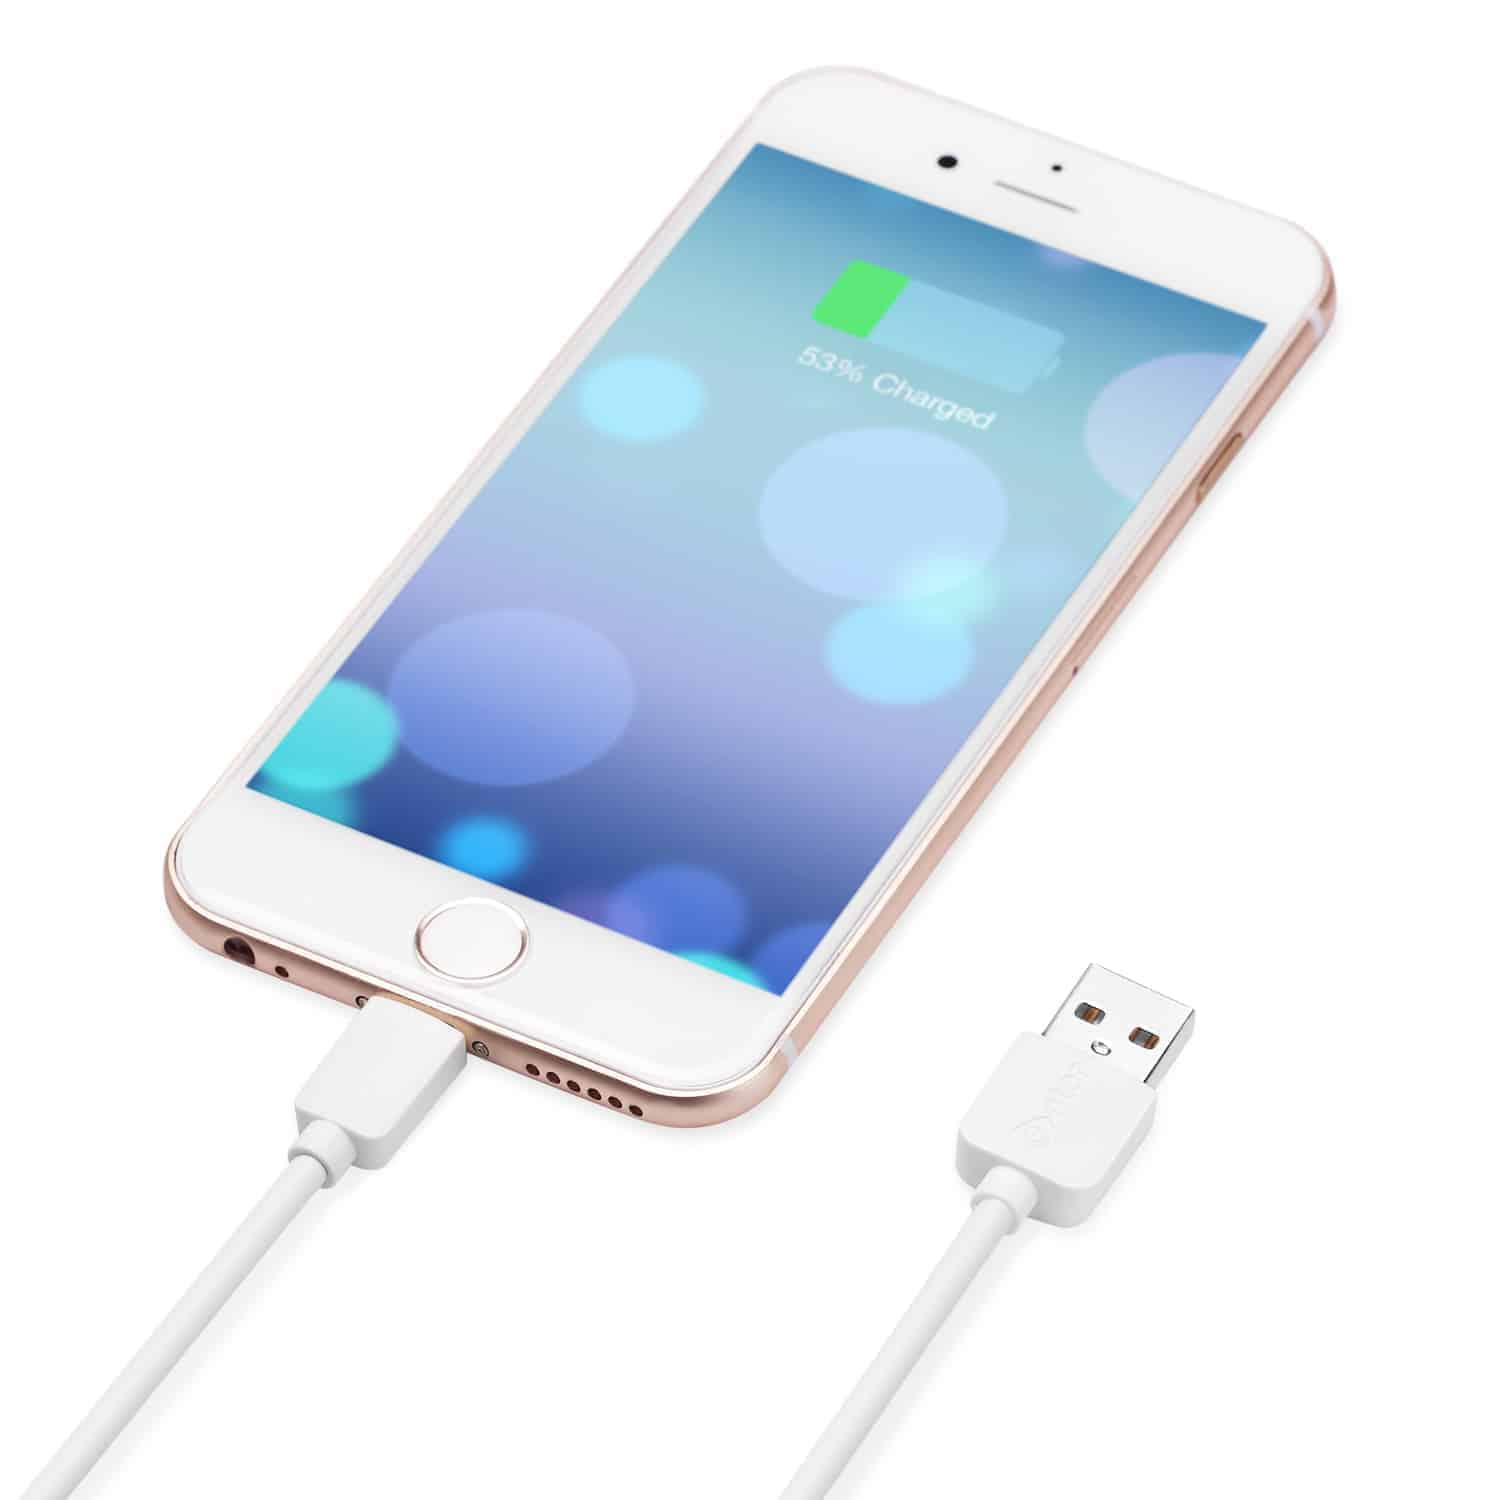 buy enter iphone fast charge and data transfer usb cable for apple devices usb e cr20 at the. Black Bedroom Furniture Sets. Home Design Ideas